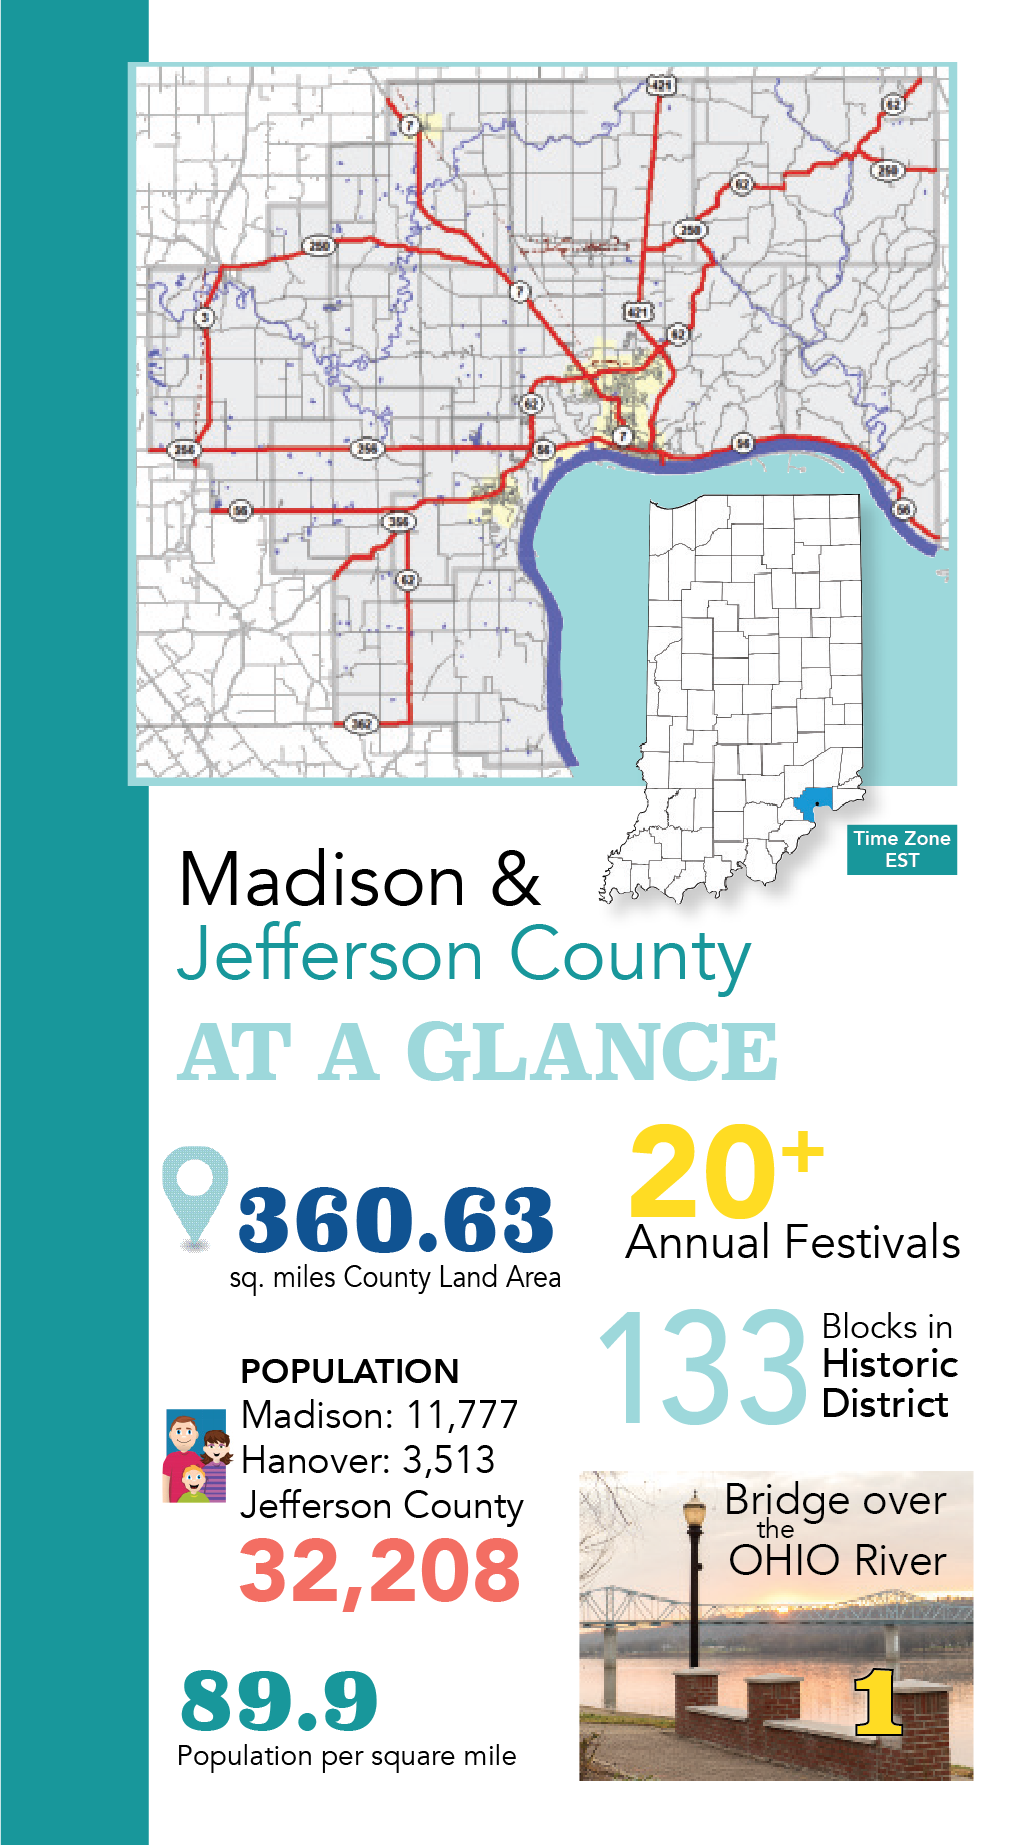 jefferson-county-at-a-glance-01.png